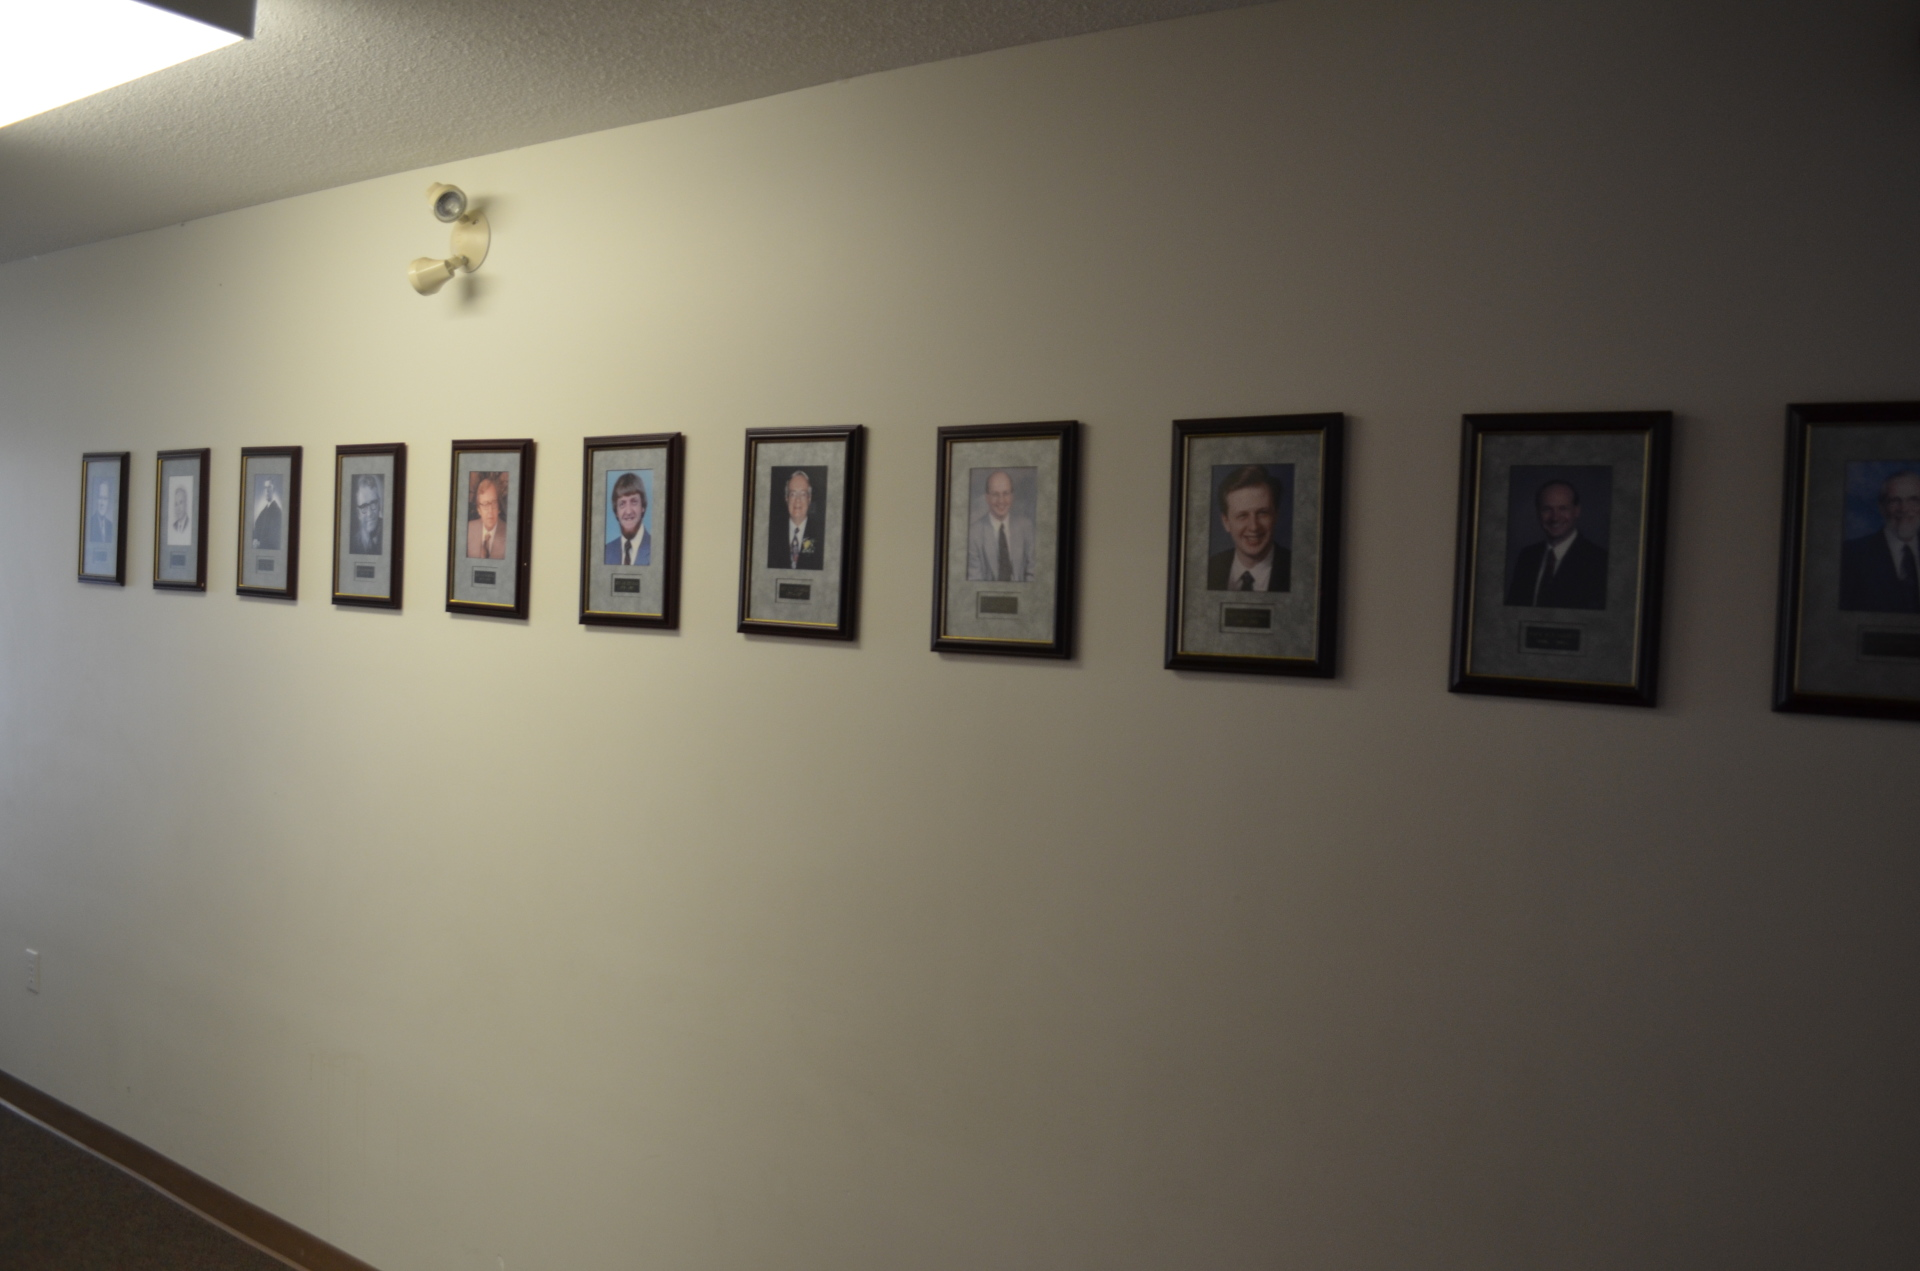 Wall of Ministers